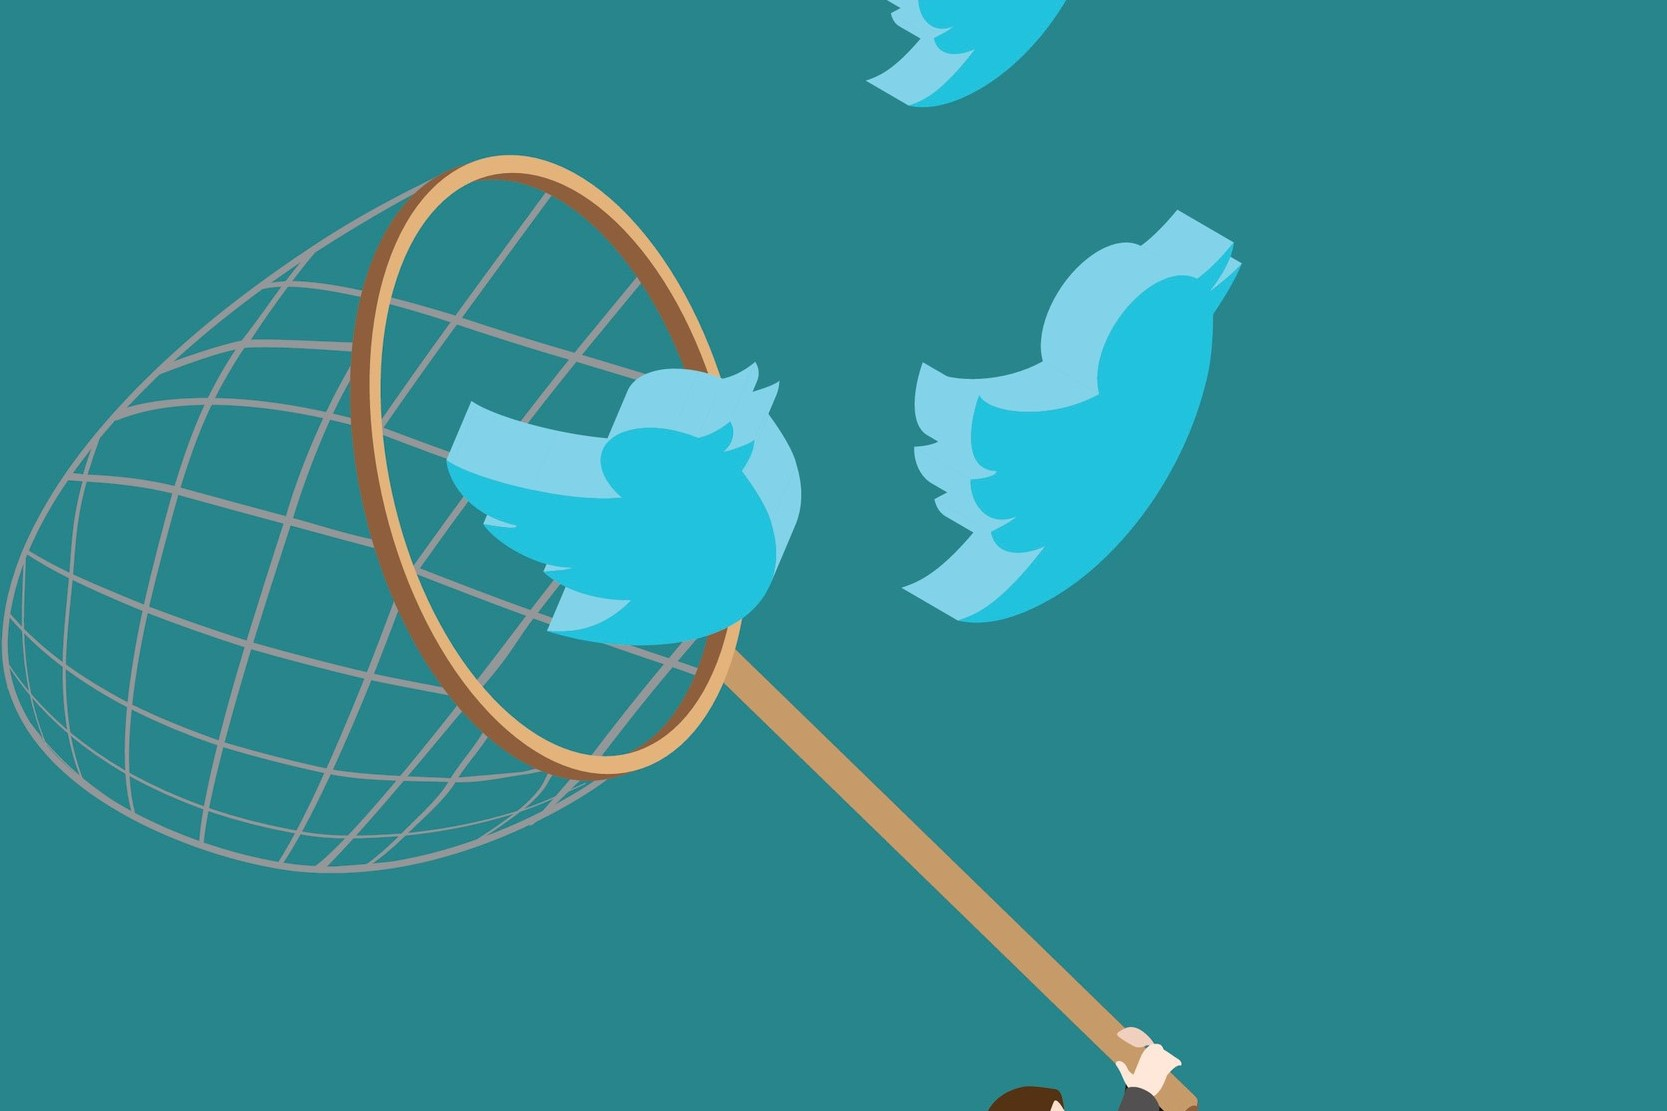 Morning News: Twitter's Crypto Ban, S Korean Exchanges in Major Moves